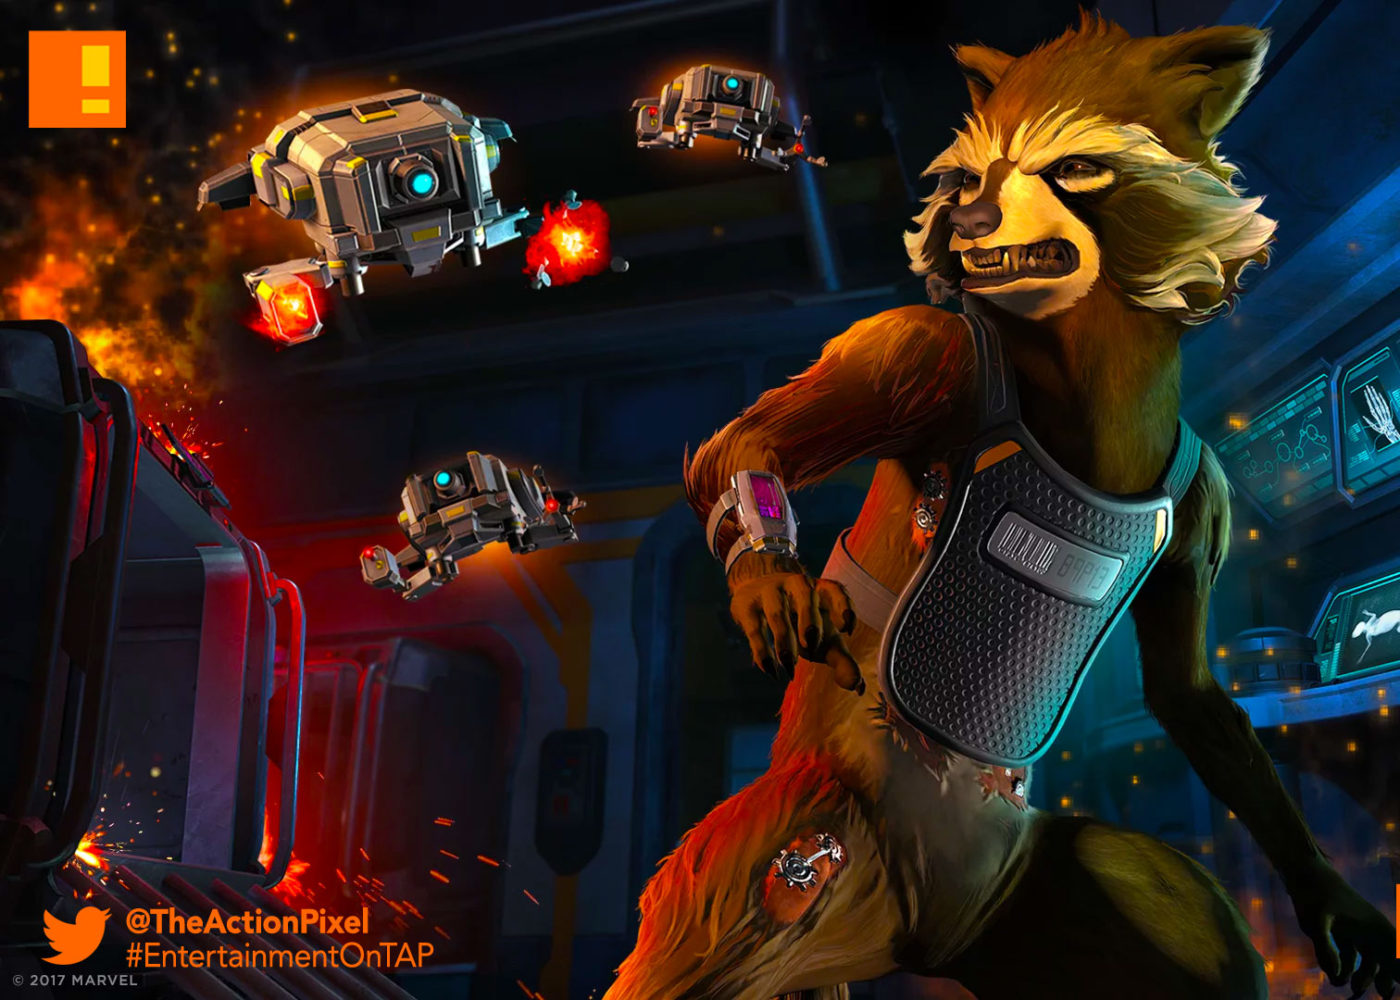 underpressure,gotg,telltale, episode 2, gotg, telltale games, telltale series, marvel, guardians of the galaxy, entertainment on tap, the action pixel,rocket ,raccoon, star-lord, drax, gamora,trailer, official trailer, launch trailer,thanos,